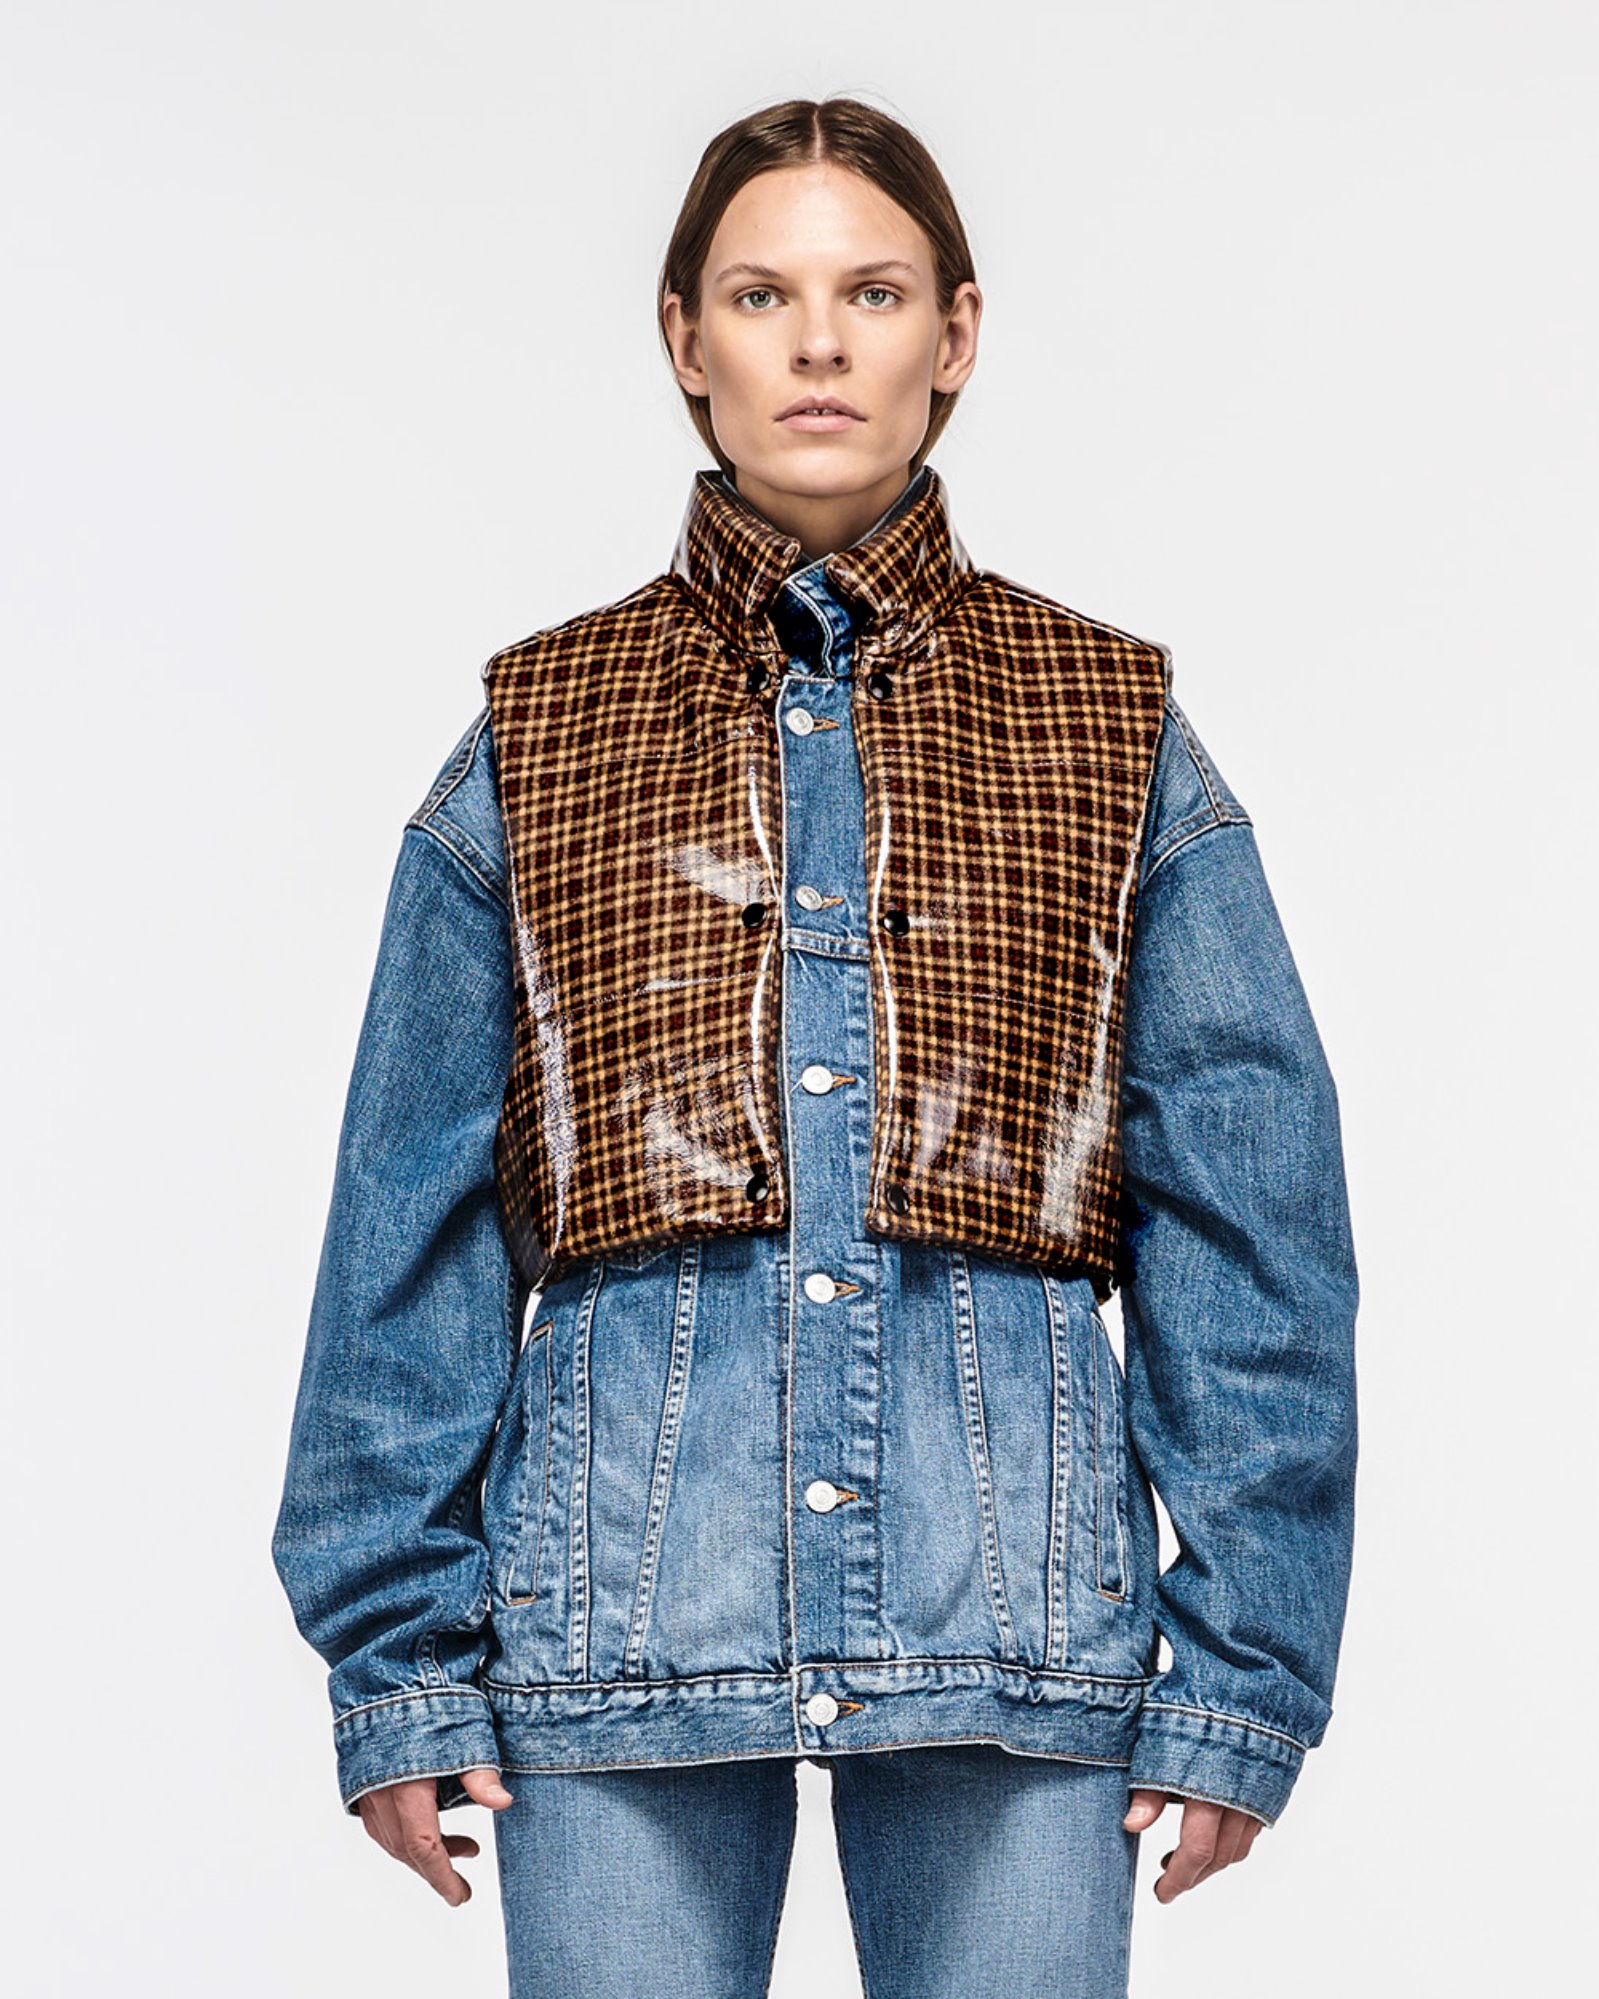 """RUNYON"" CONVERTIBLE DENIM JACKET BLUEMOON W PLAID"